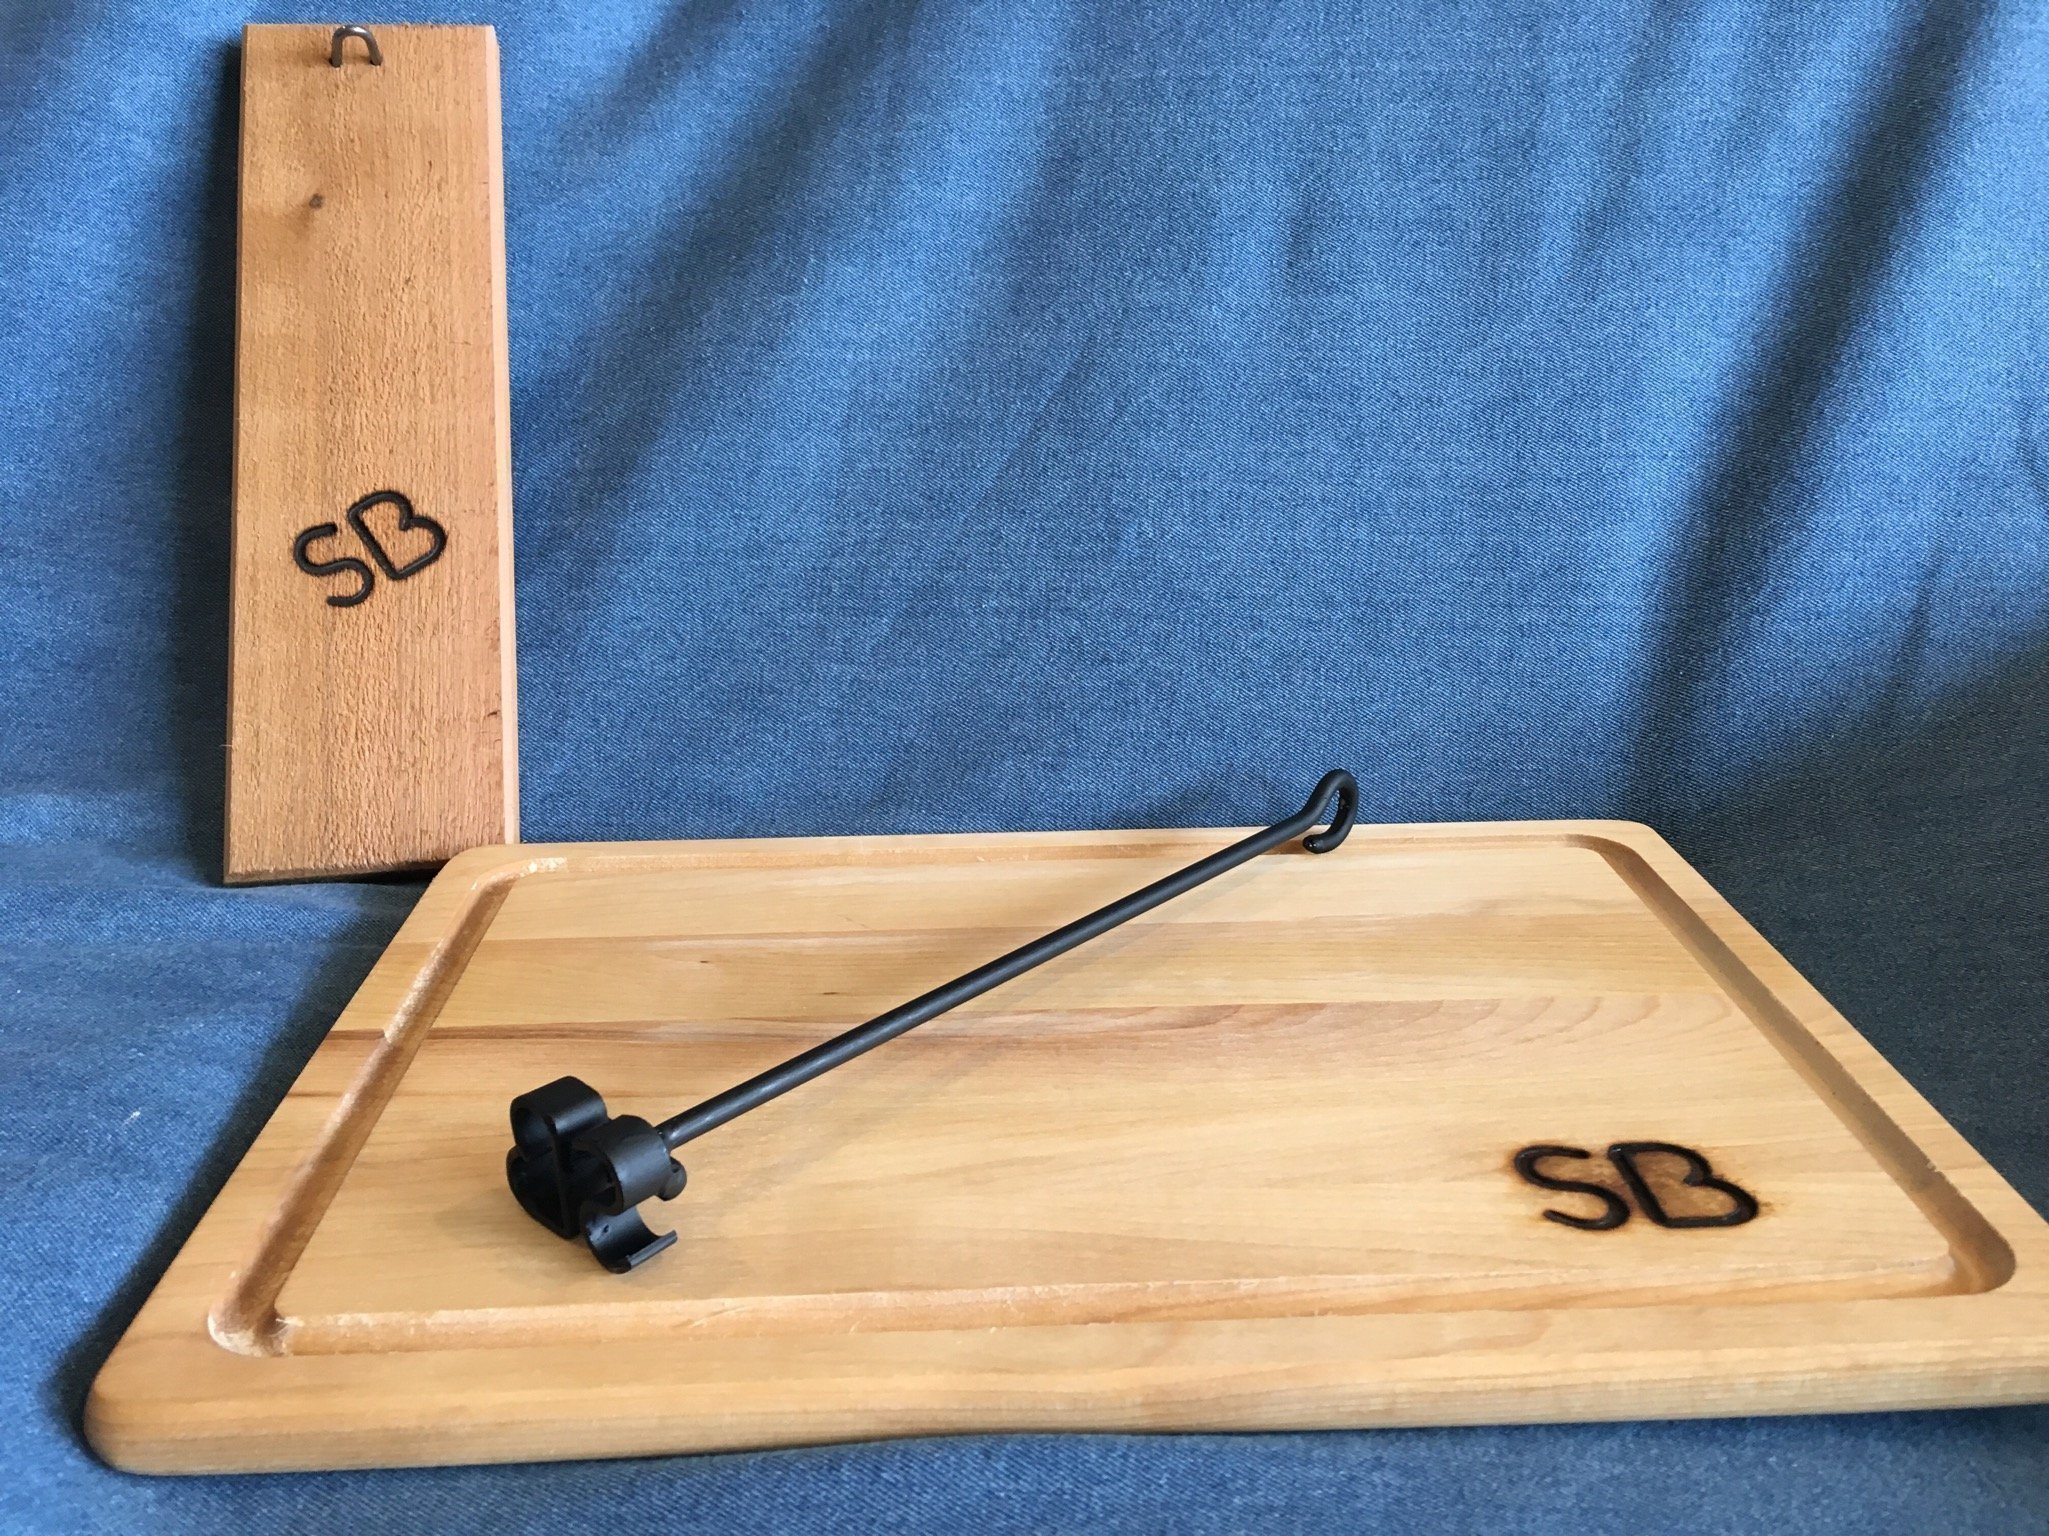 Personalized Miniature Branding Iron with Cedar Display Board and Branded Carving Board by Sloan Brands by Sloan Brands